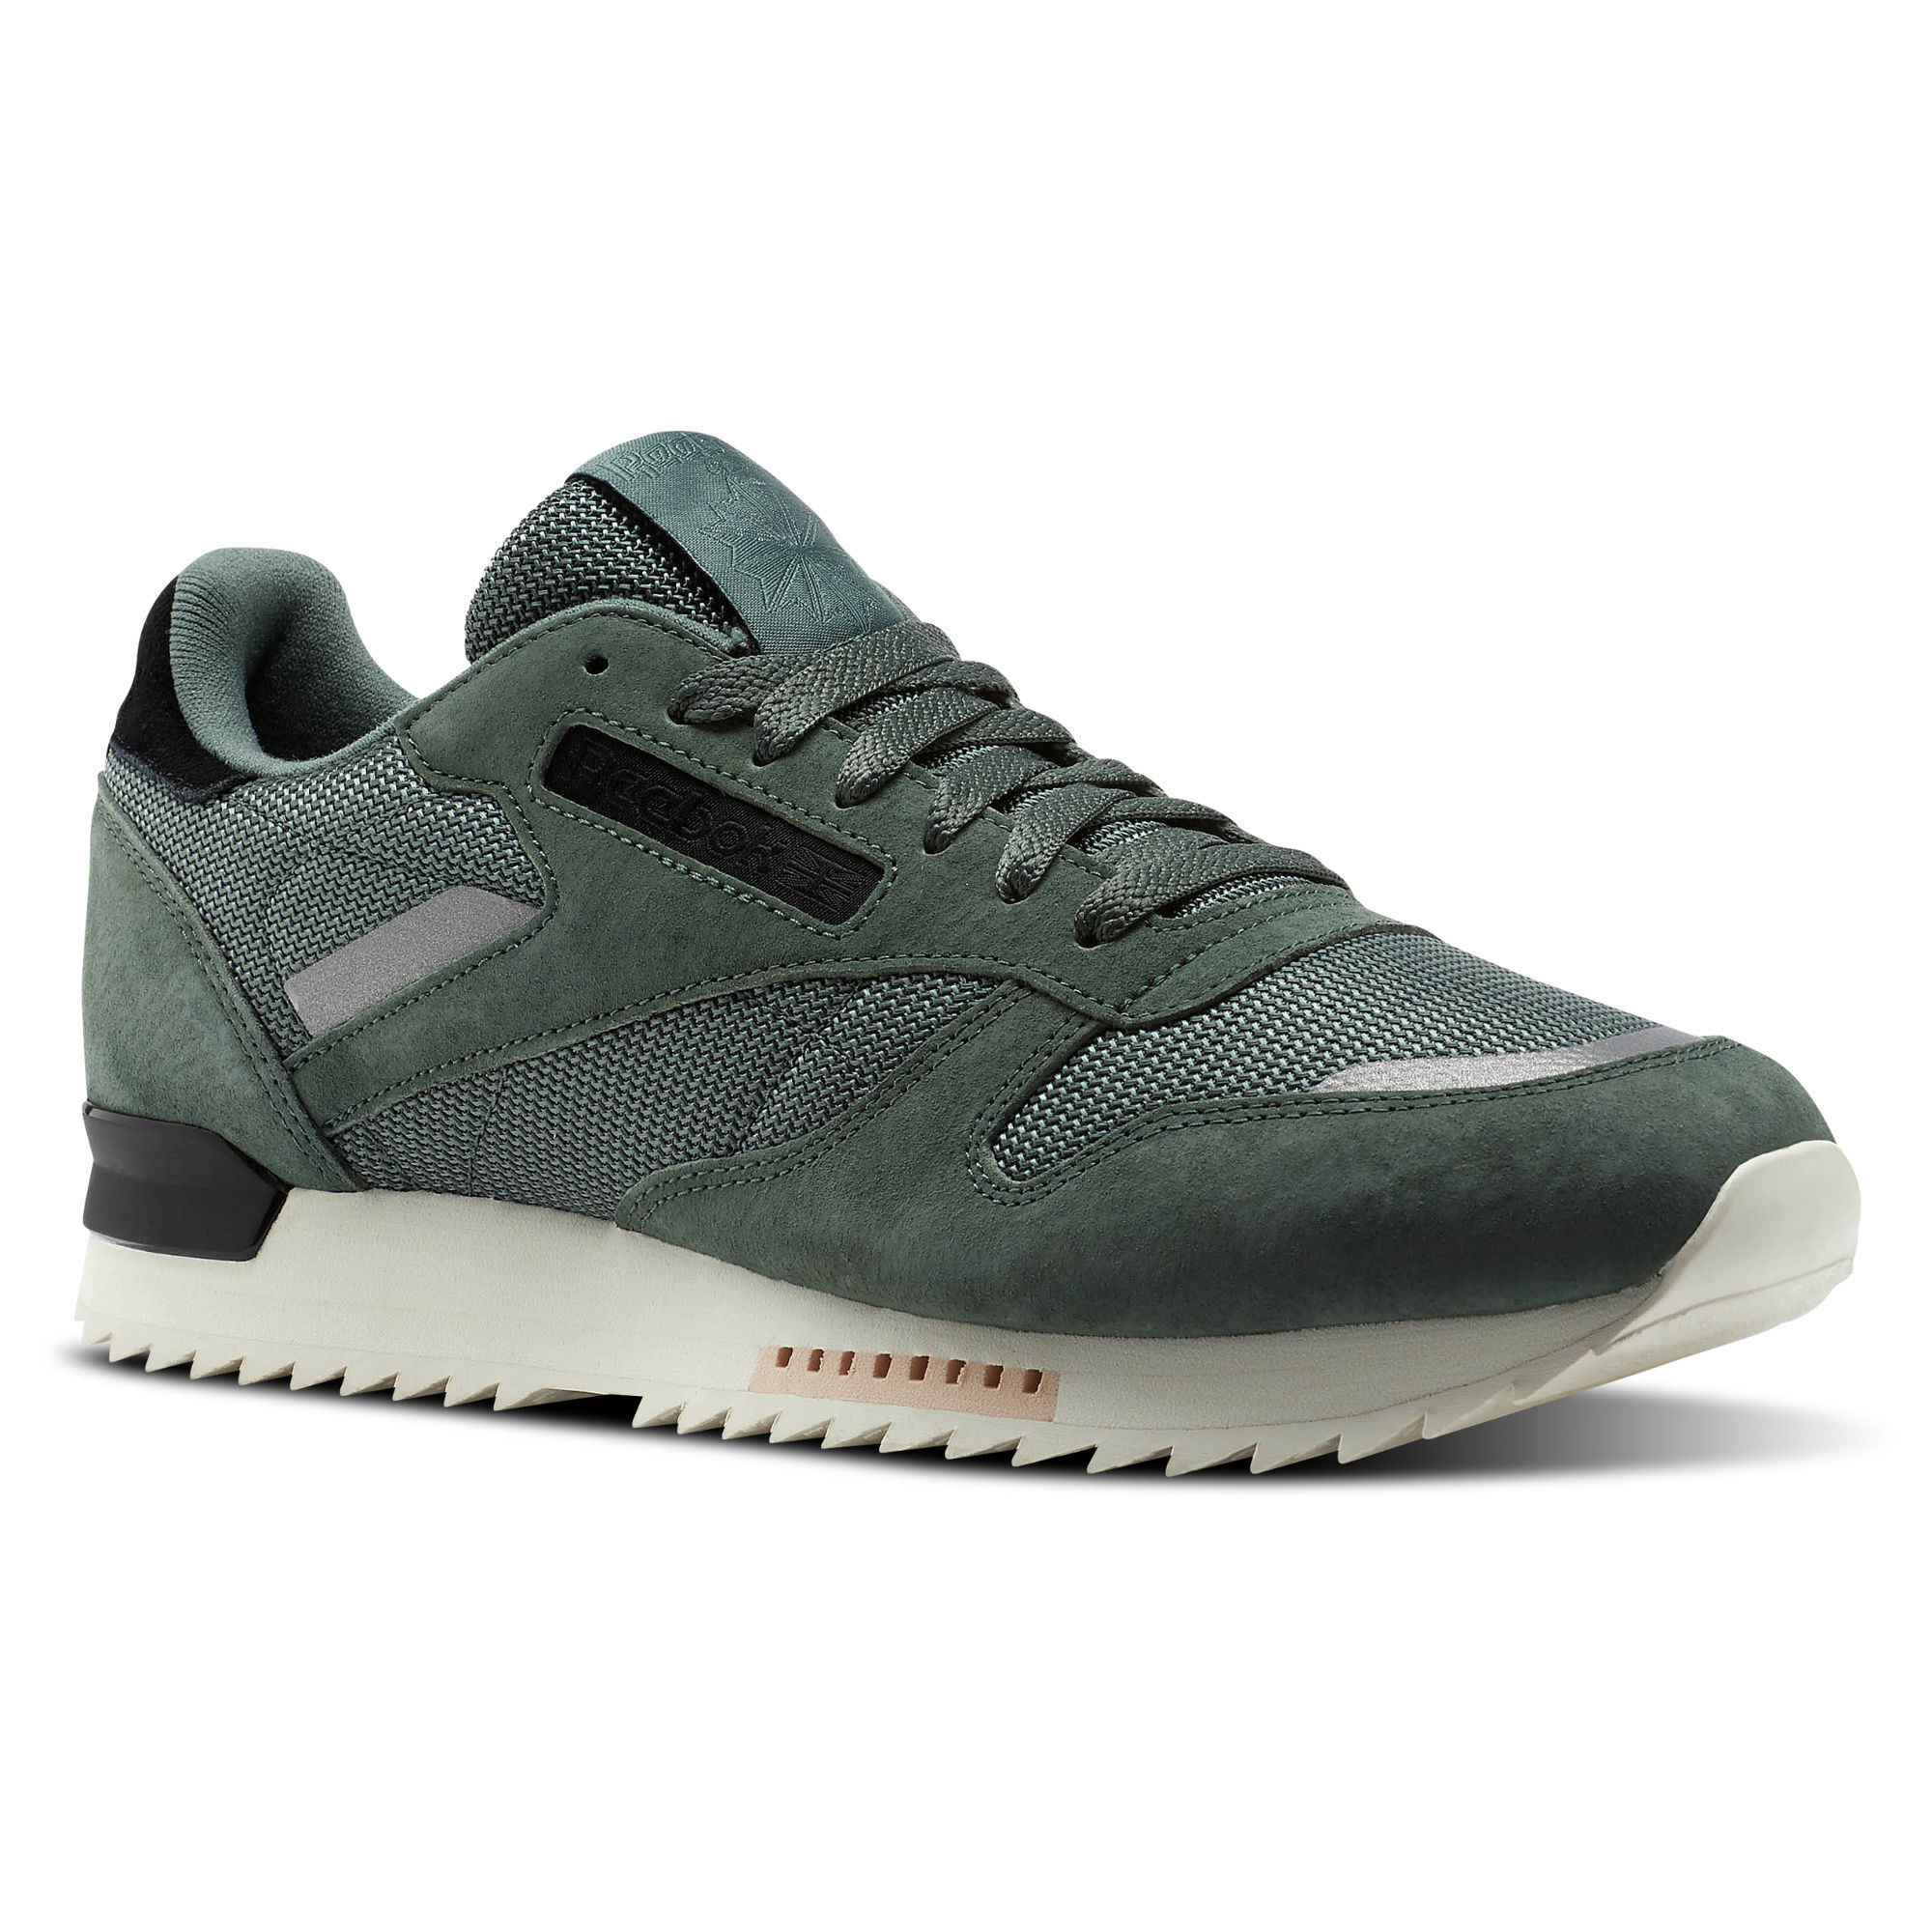 Reebok Classic Leather RIPPLE SN Mens Green/Turquoise/White/Black Sneakers (331OQDBX)